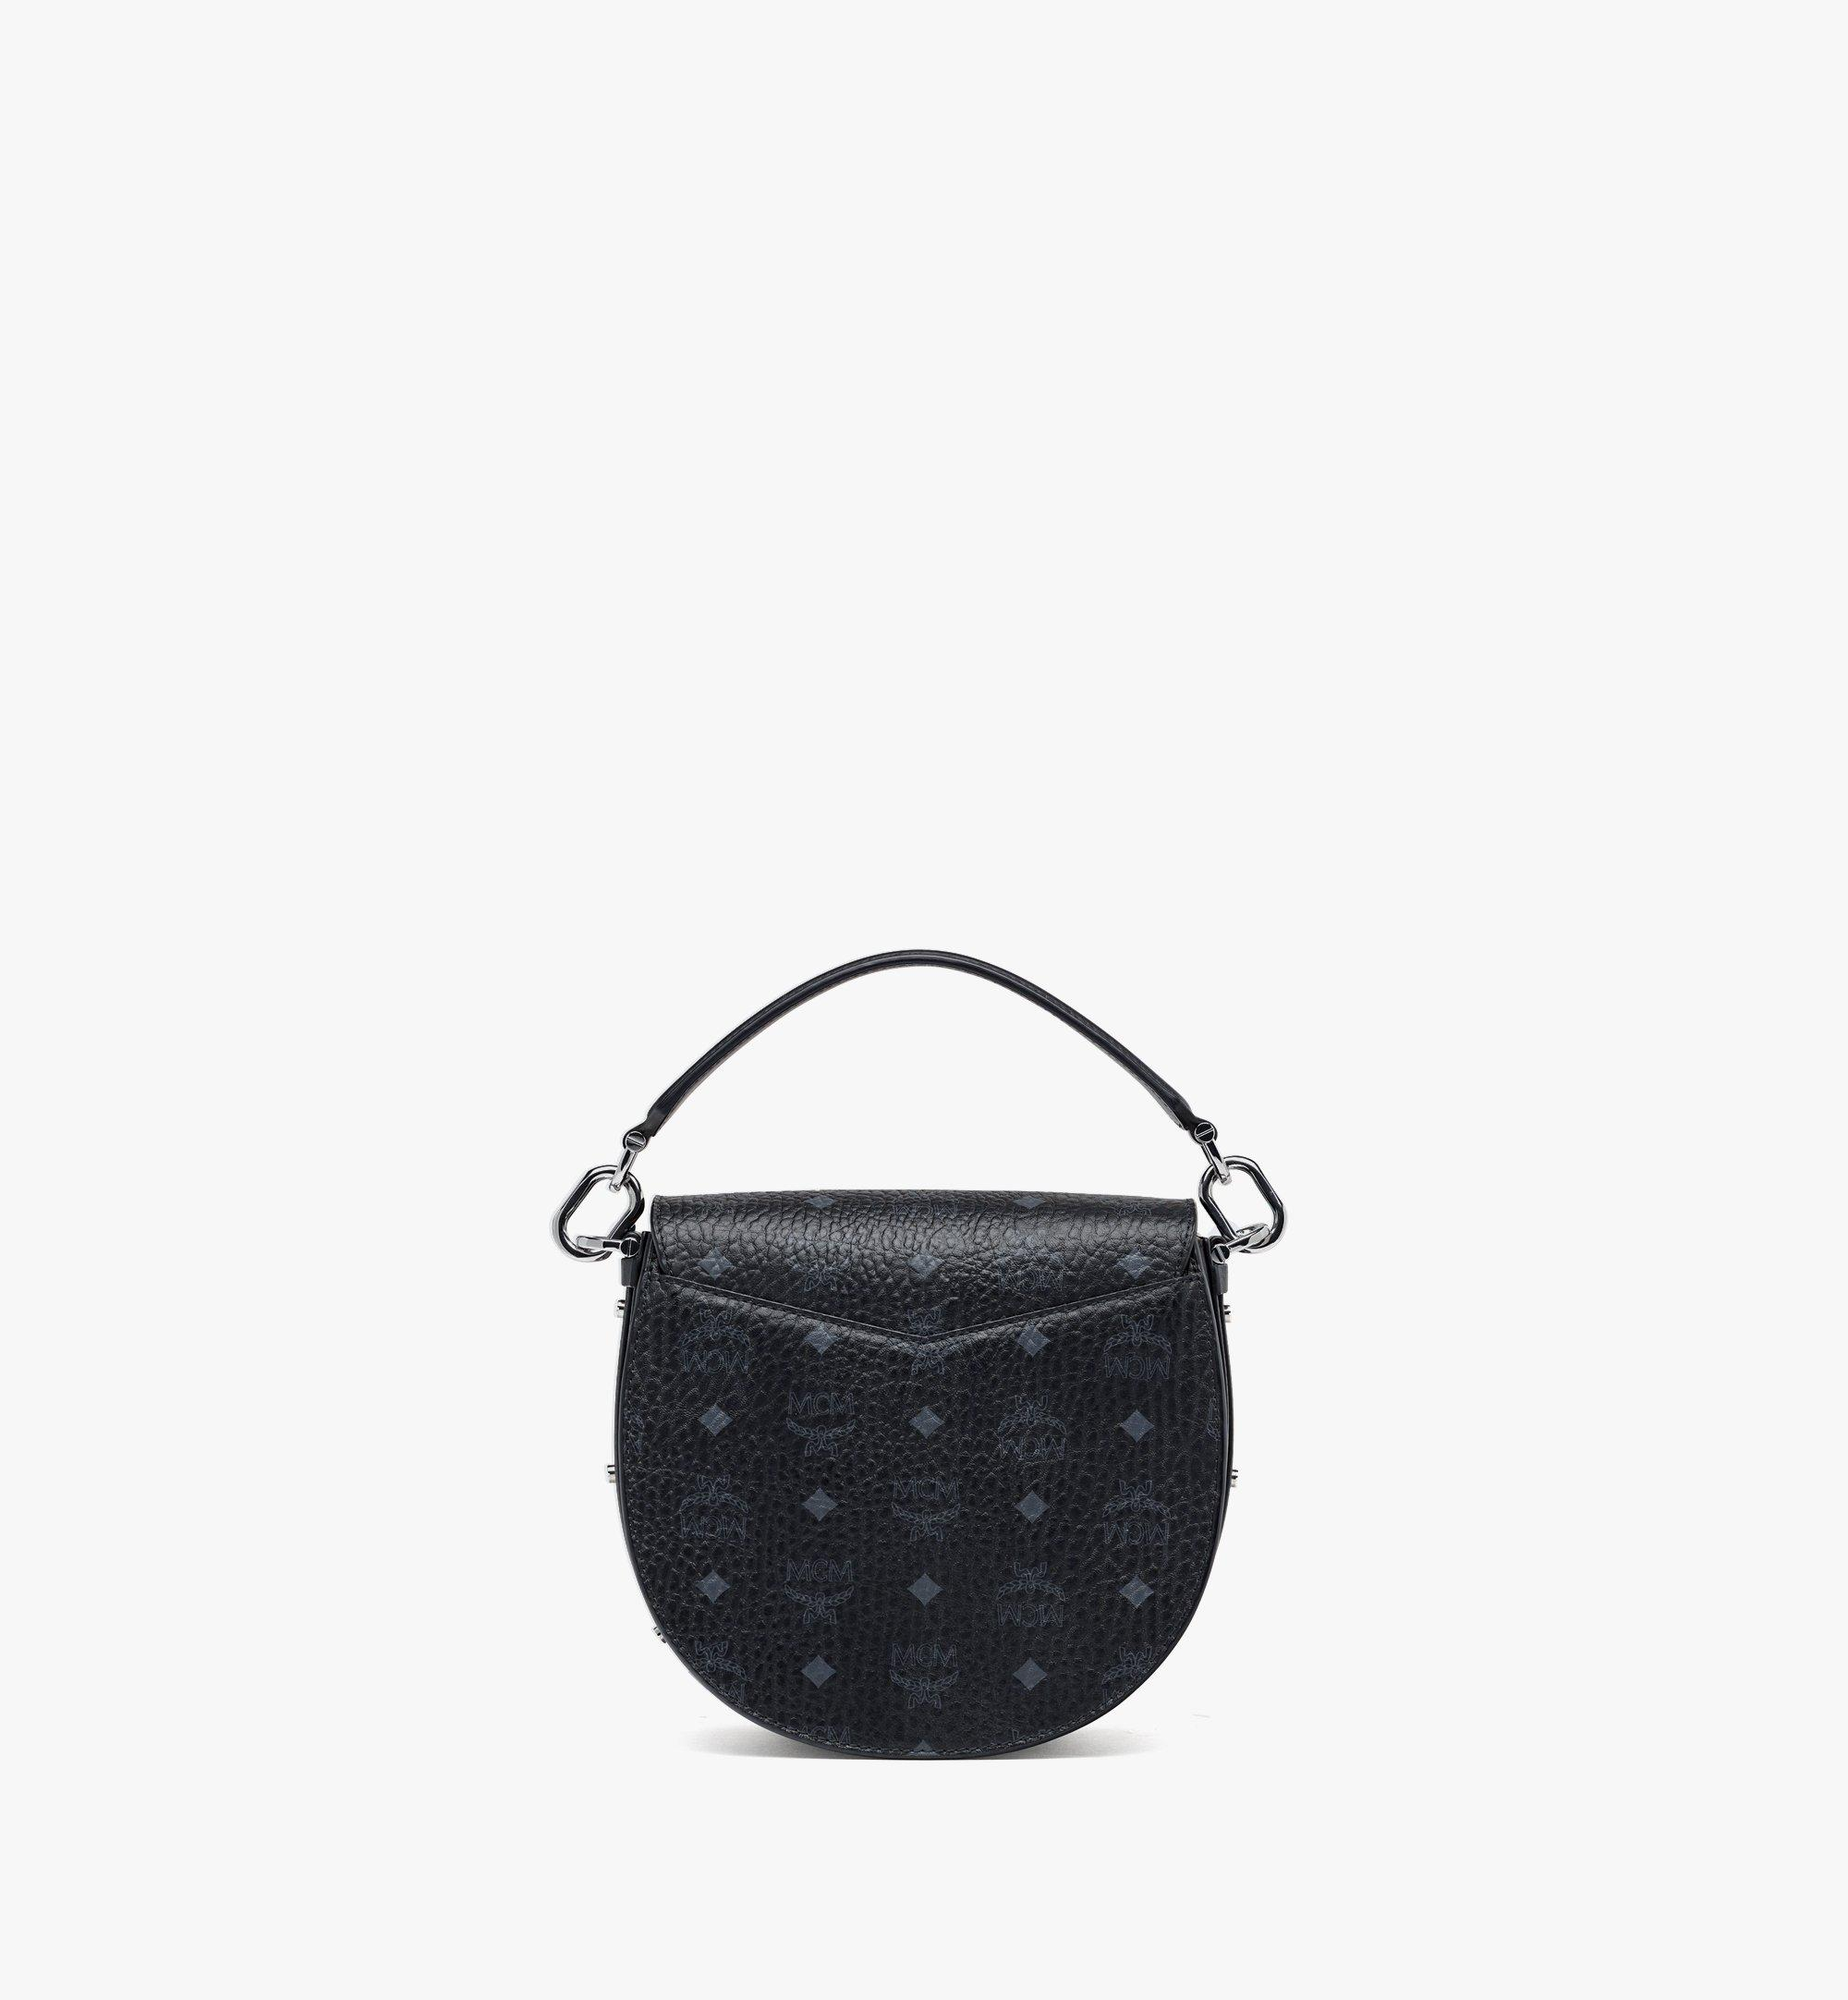 MCM Upcycling Project Patricia Shoulder Bag in Marquage Visetos Black MWSBSUP03BK001 Alternate View 3